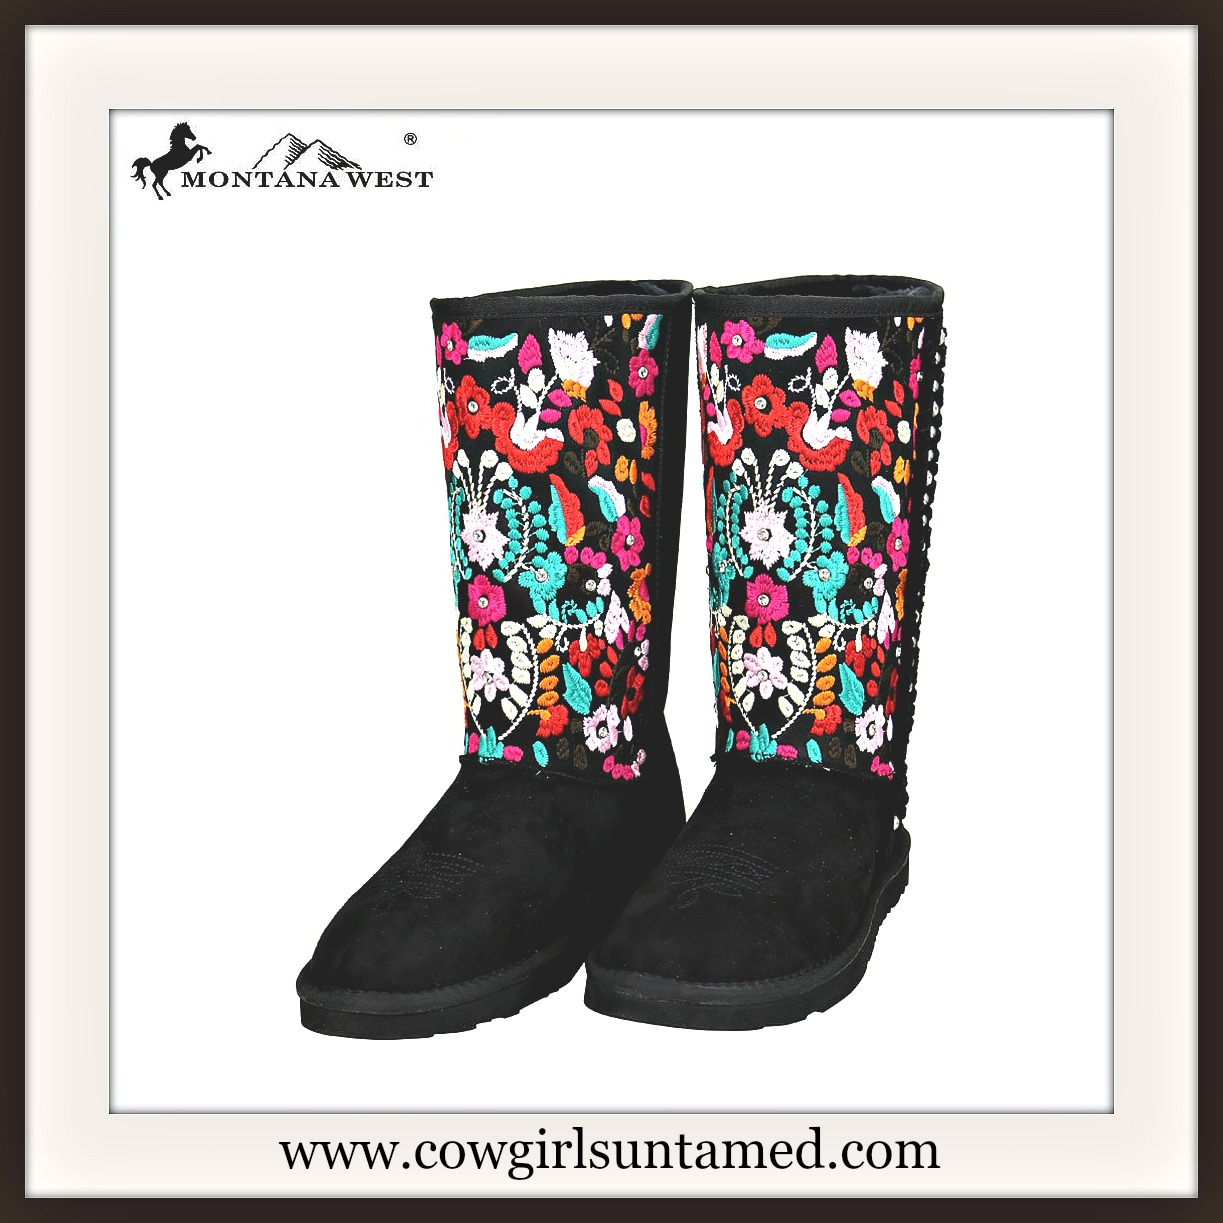 COWGIRL GYPSY BOOTS  Multi Color Embroidered Floral Design Fur Lined Black Suede Winter Boots